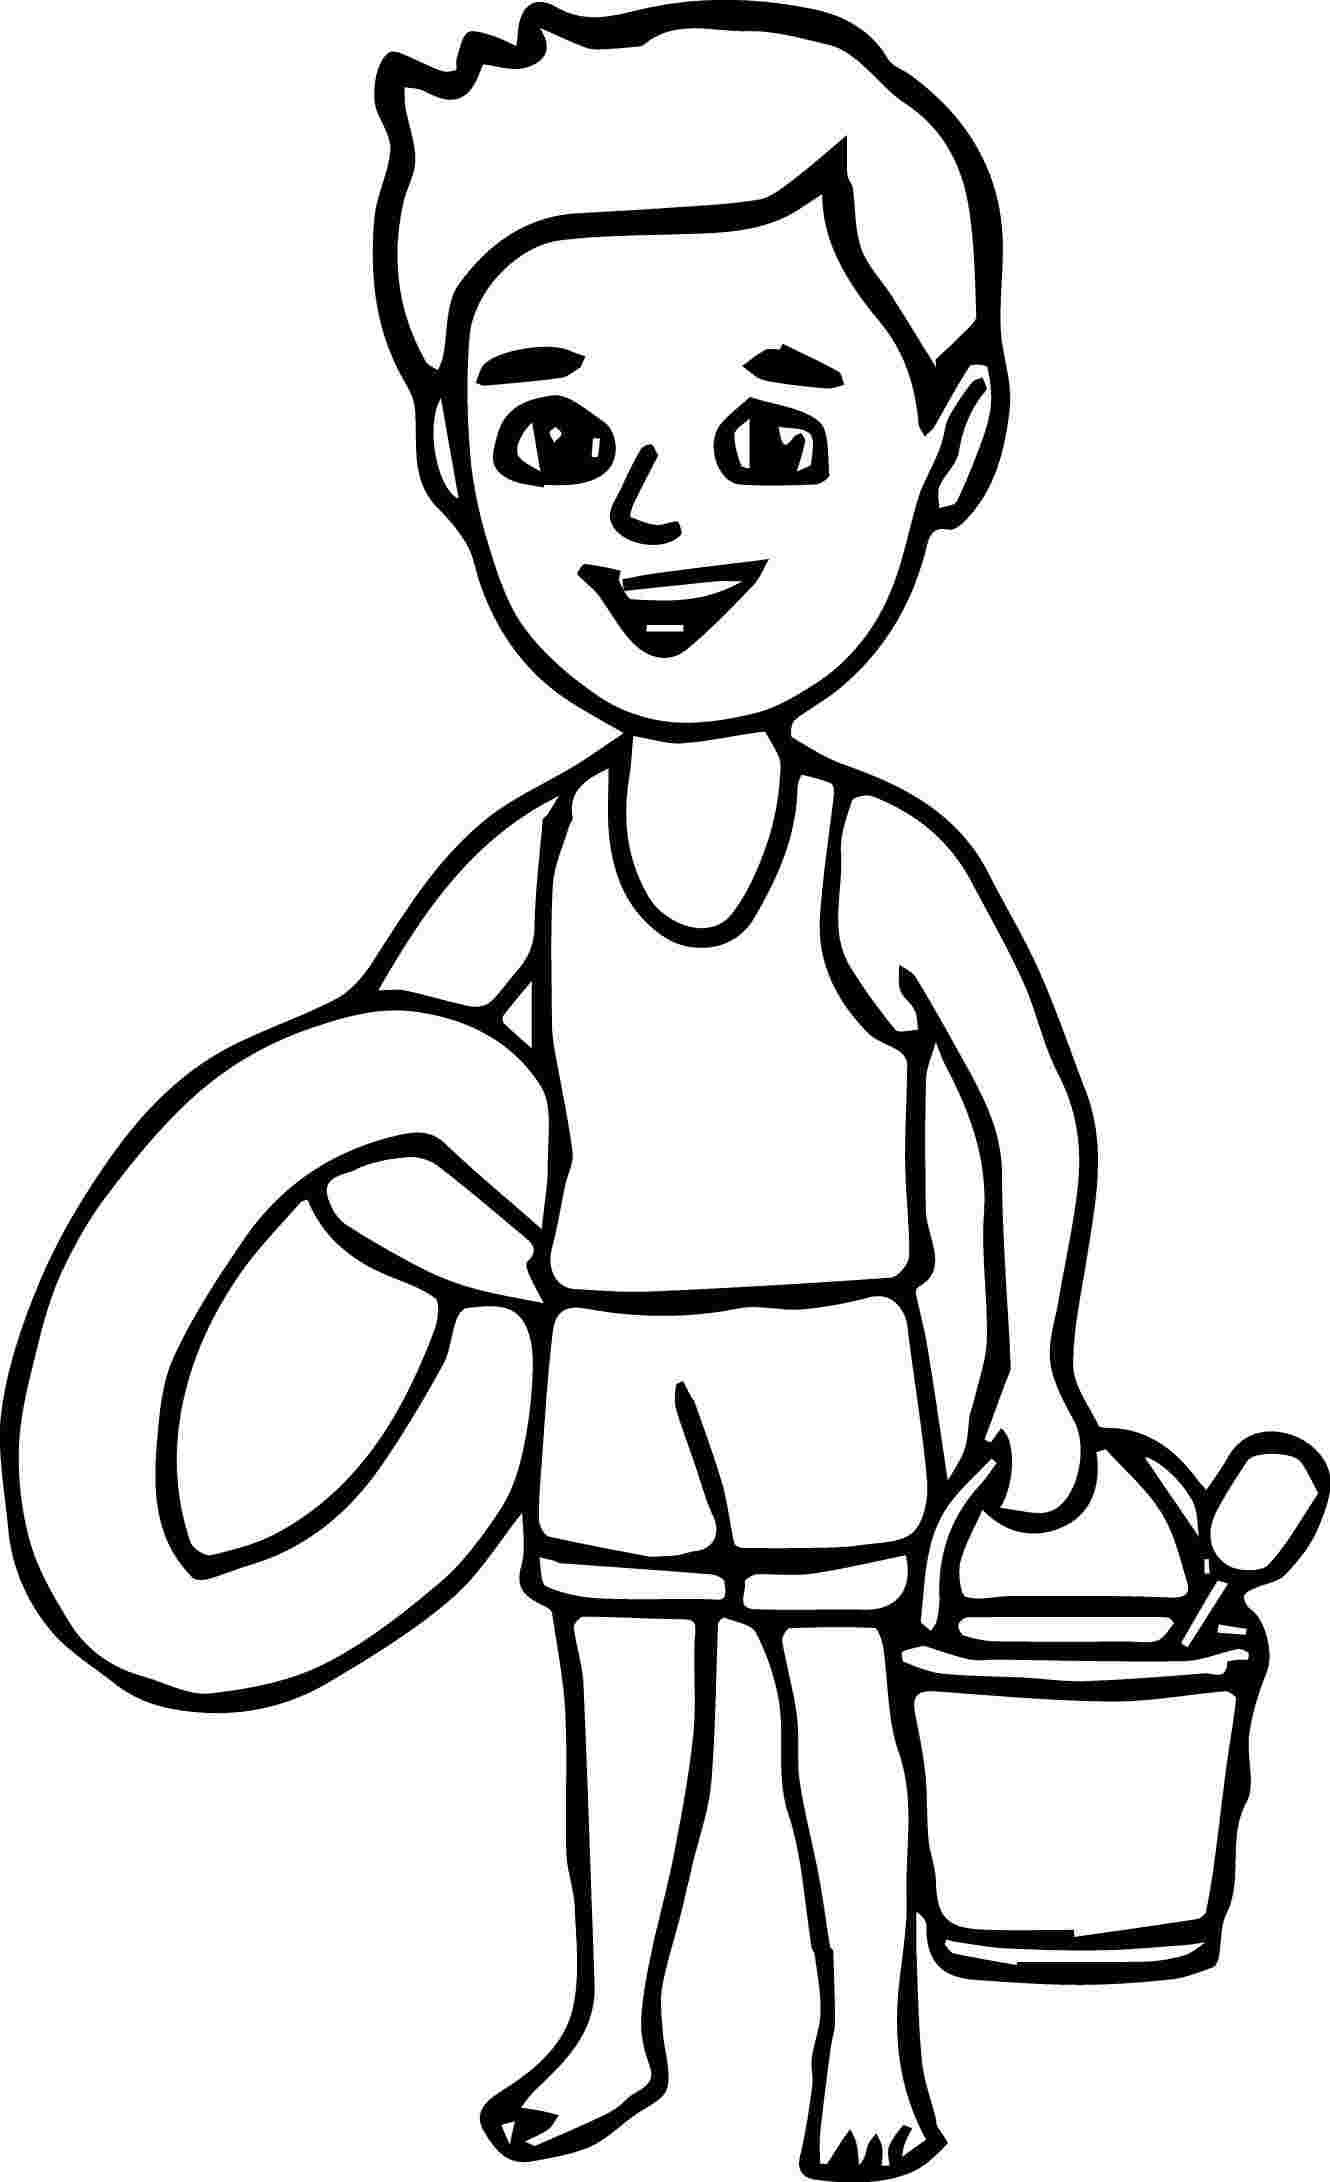 coloring pages : Coloring Pages Online Printable Unique 685 Coloring Page  For Boy Coloring Pages Online Printable ~ affiliateprogrambook.com